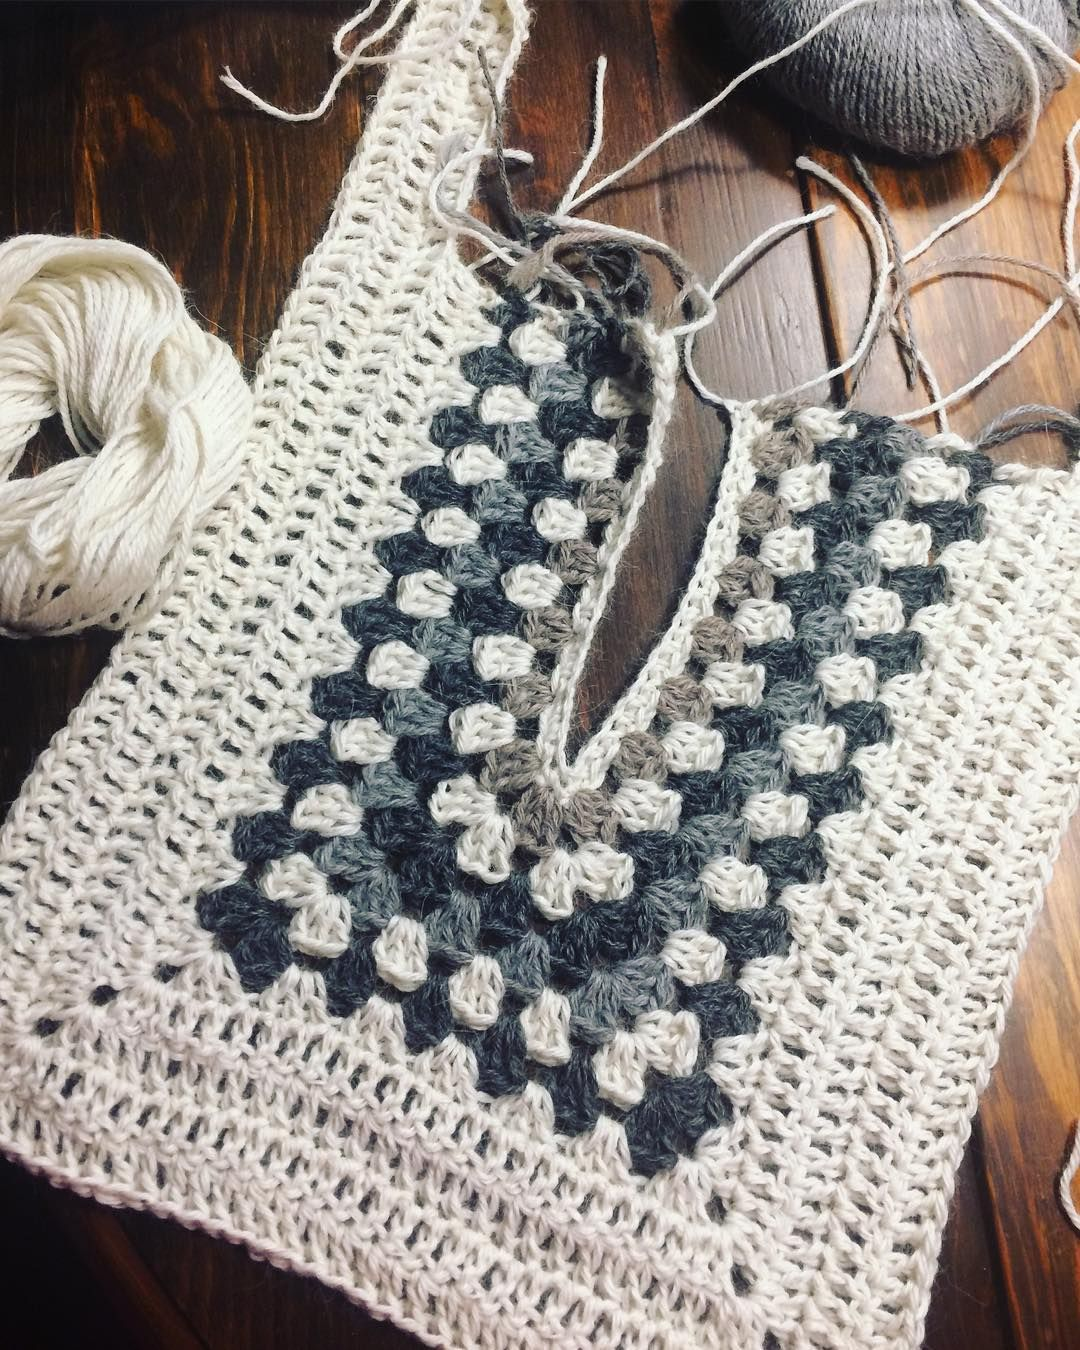 🧐 ...just testing... #lastnight #latenightcrochet #crochet #yarn #dropsdesign #alpackayarn #crochetpattern by @iron_lamb #midnightmexicantop #boho #bohostyle #crochettop